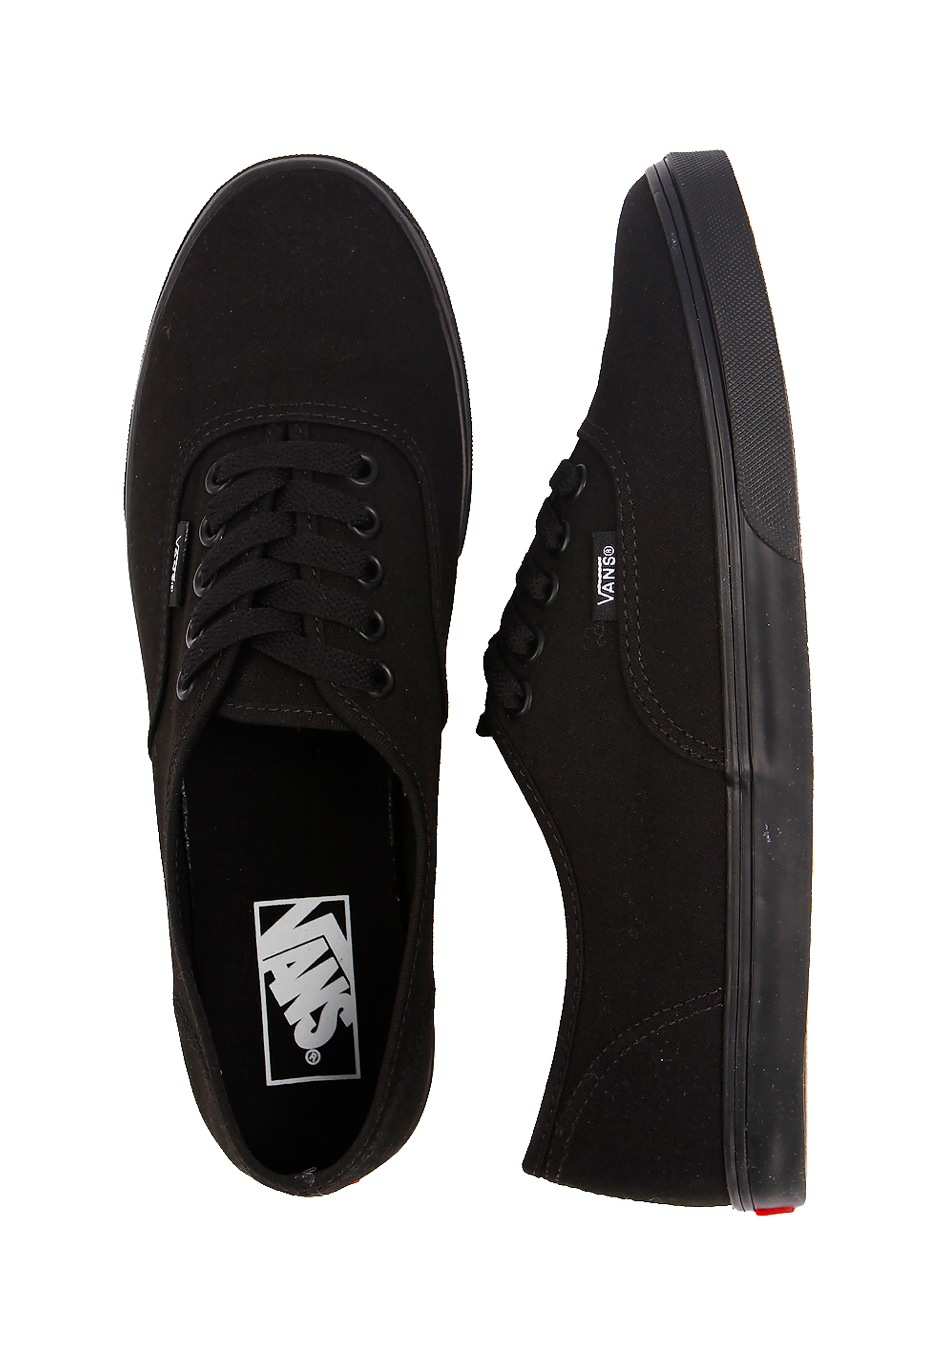 Vans - Authentic Lo Pro Black/Black - Girl Shoes - Impericon.com UK